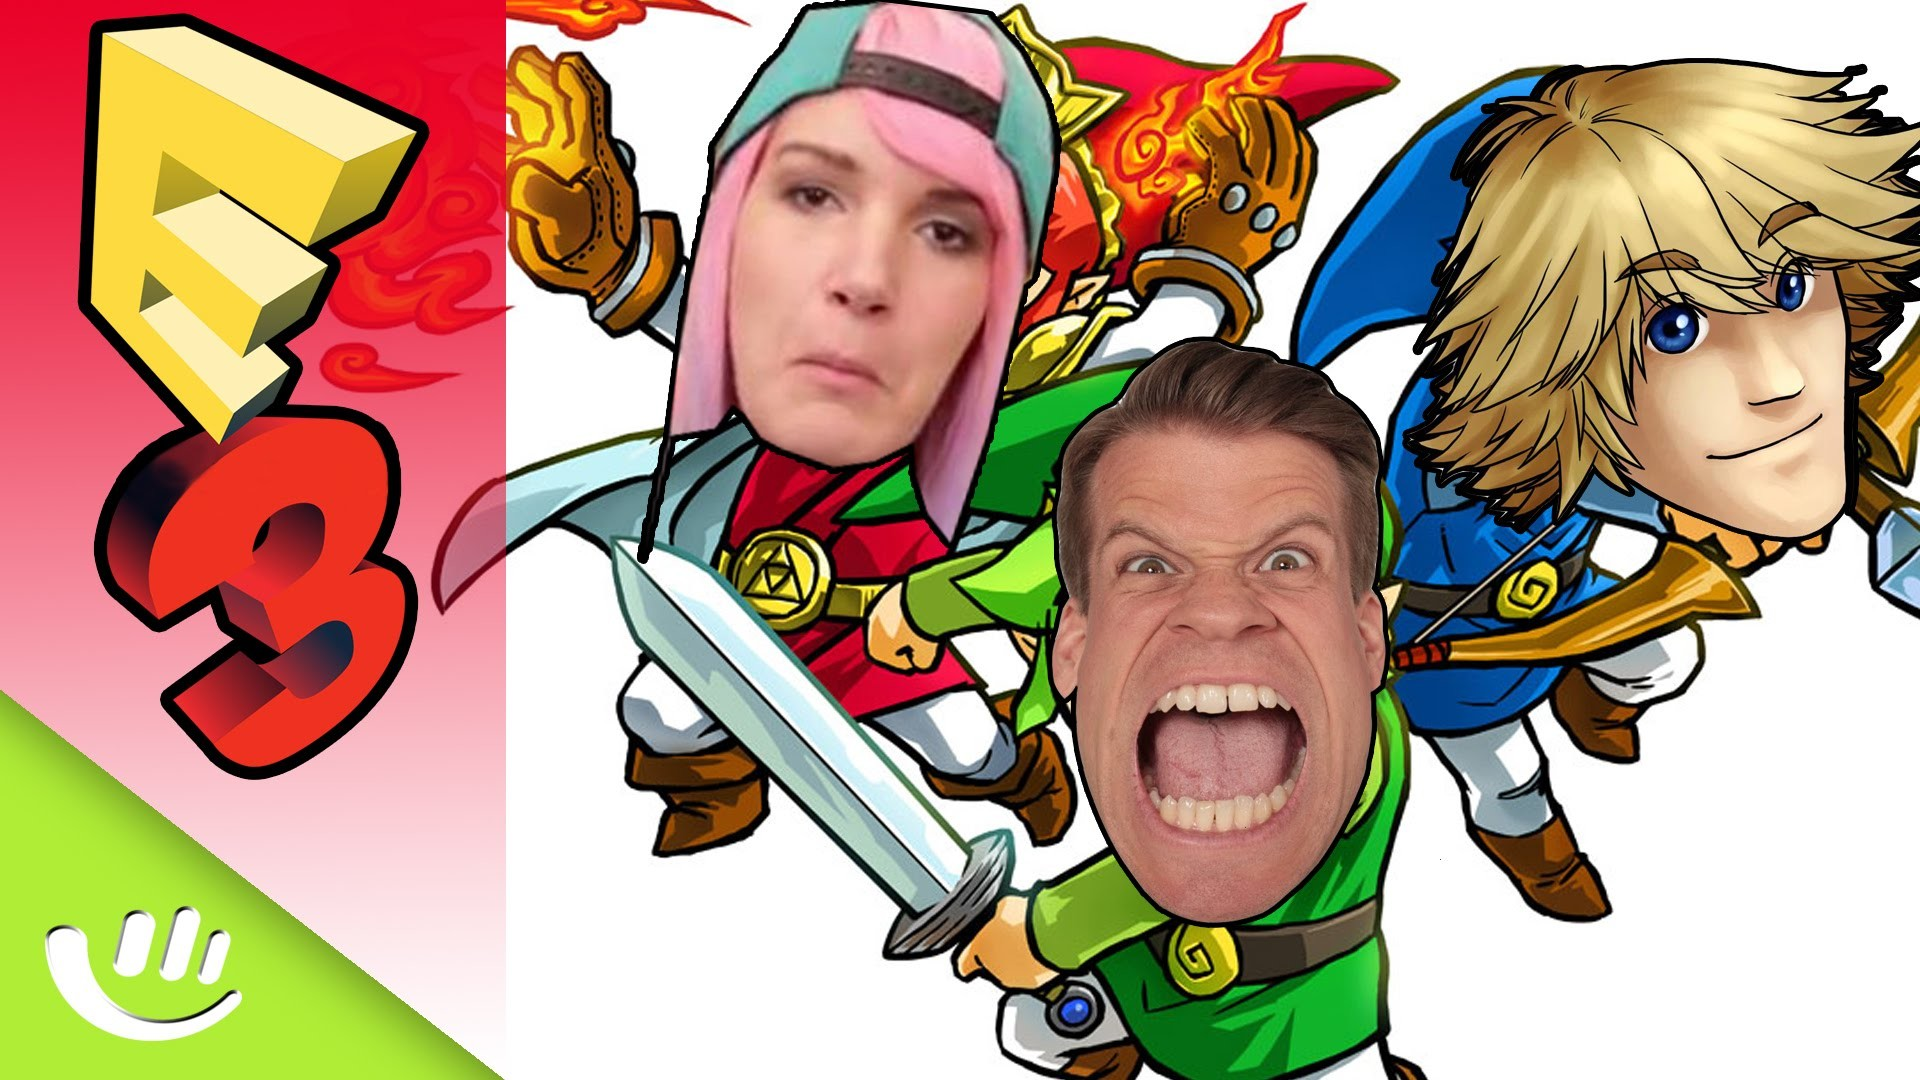 Res: 1920x1080, Unschlagbares Team in Zelda: Triforce Heroes - E32015